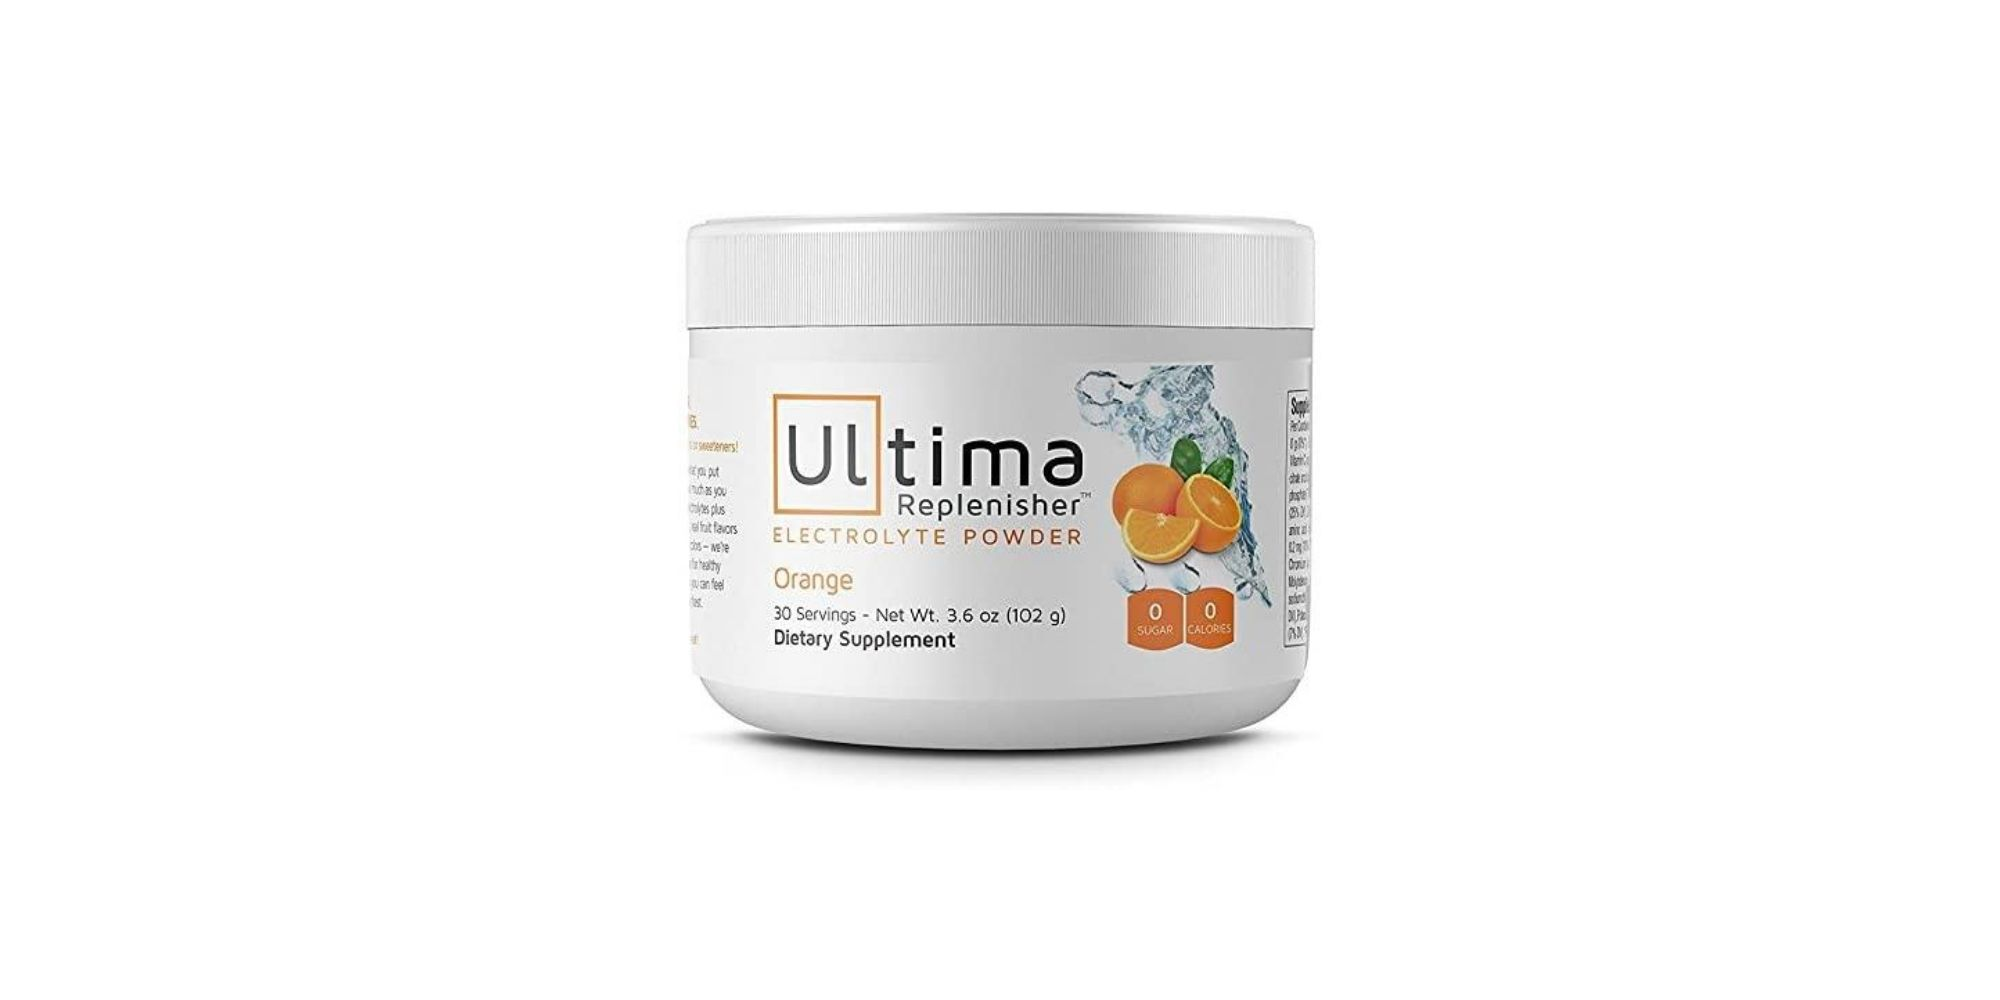 Ultima Replenisher Electrolyte